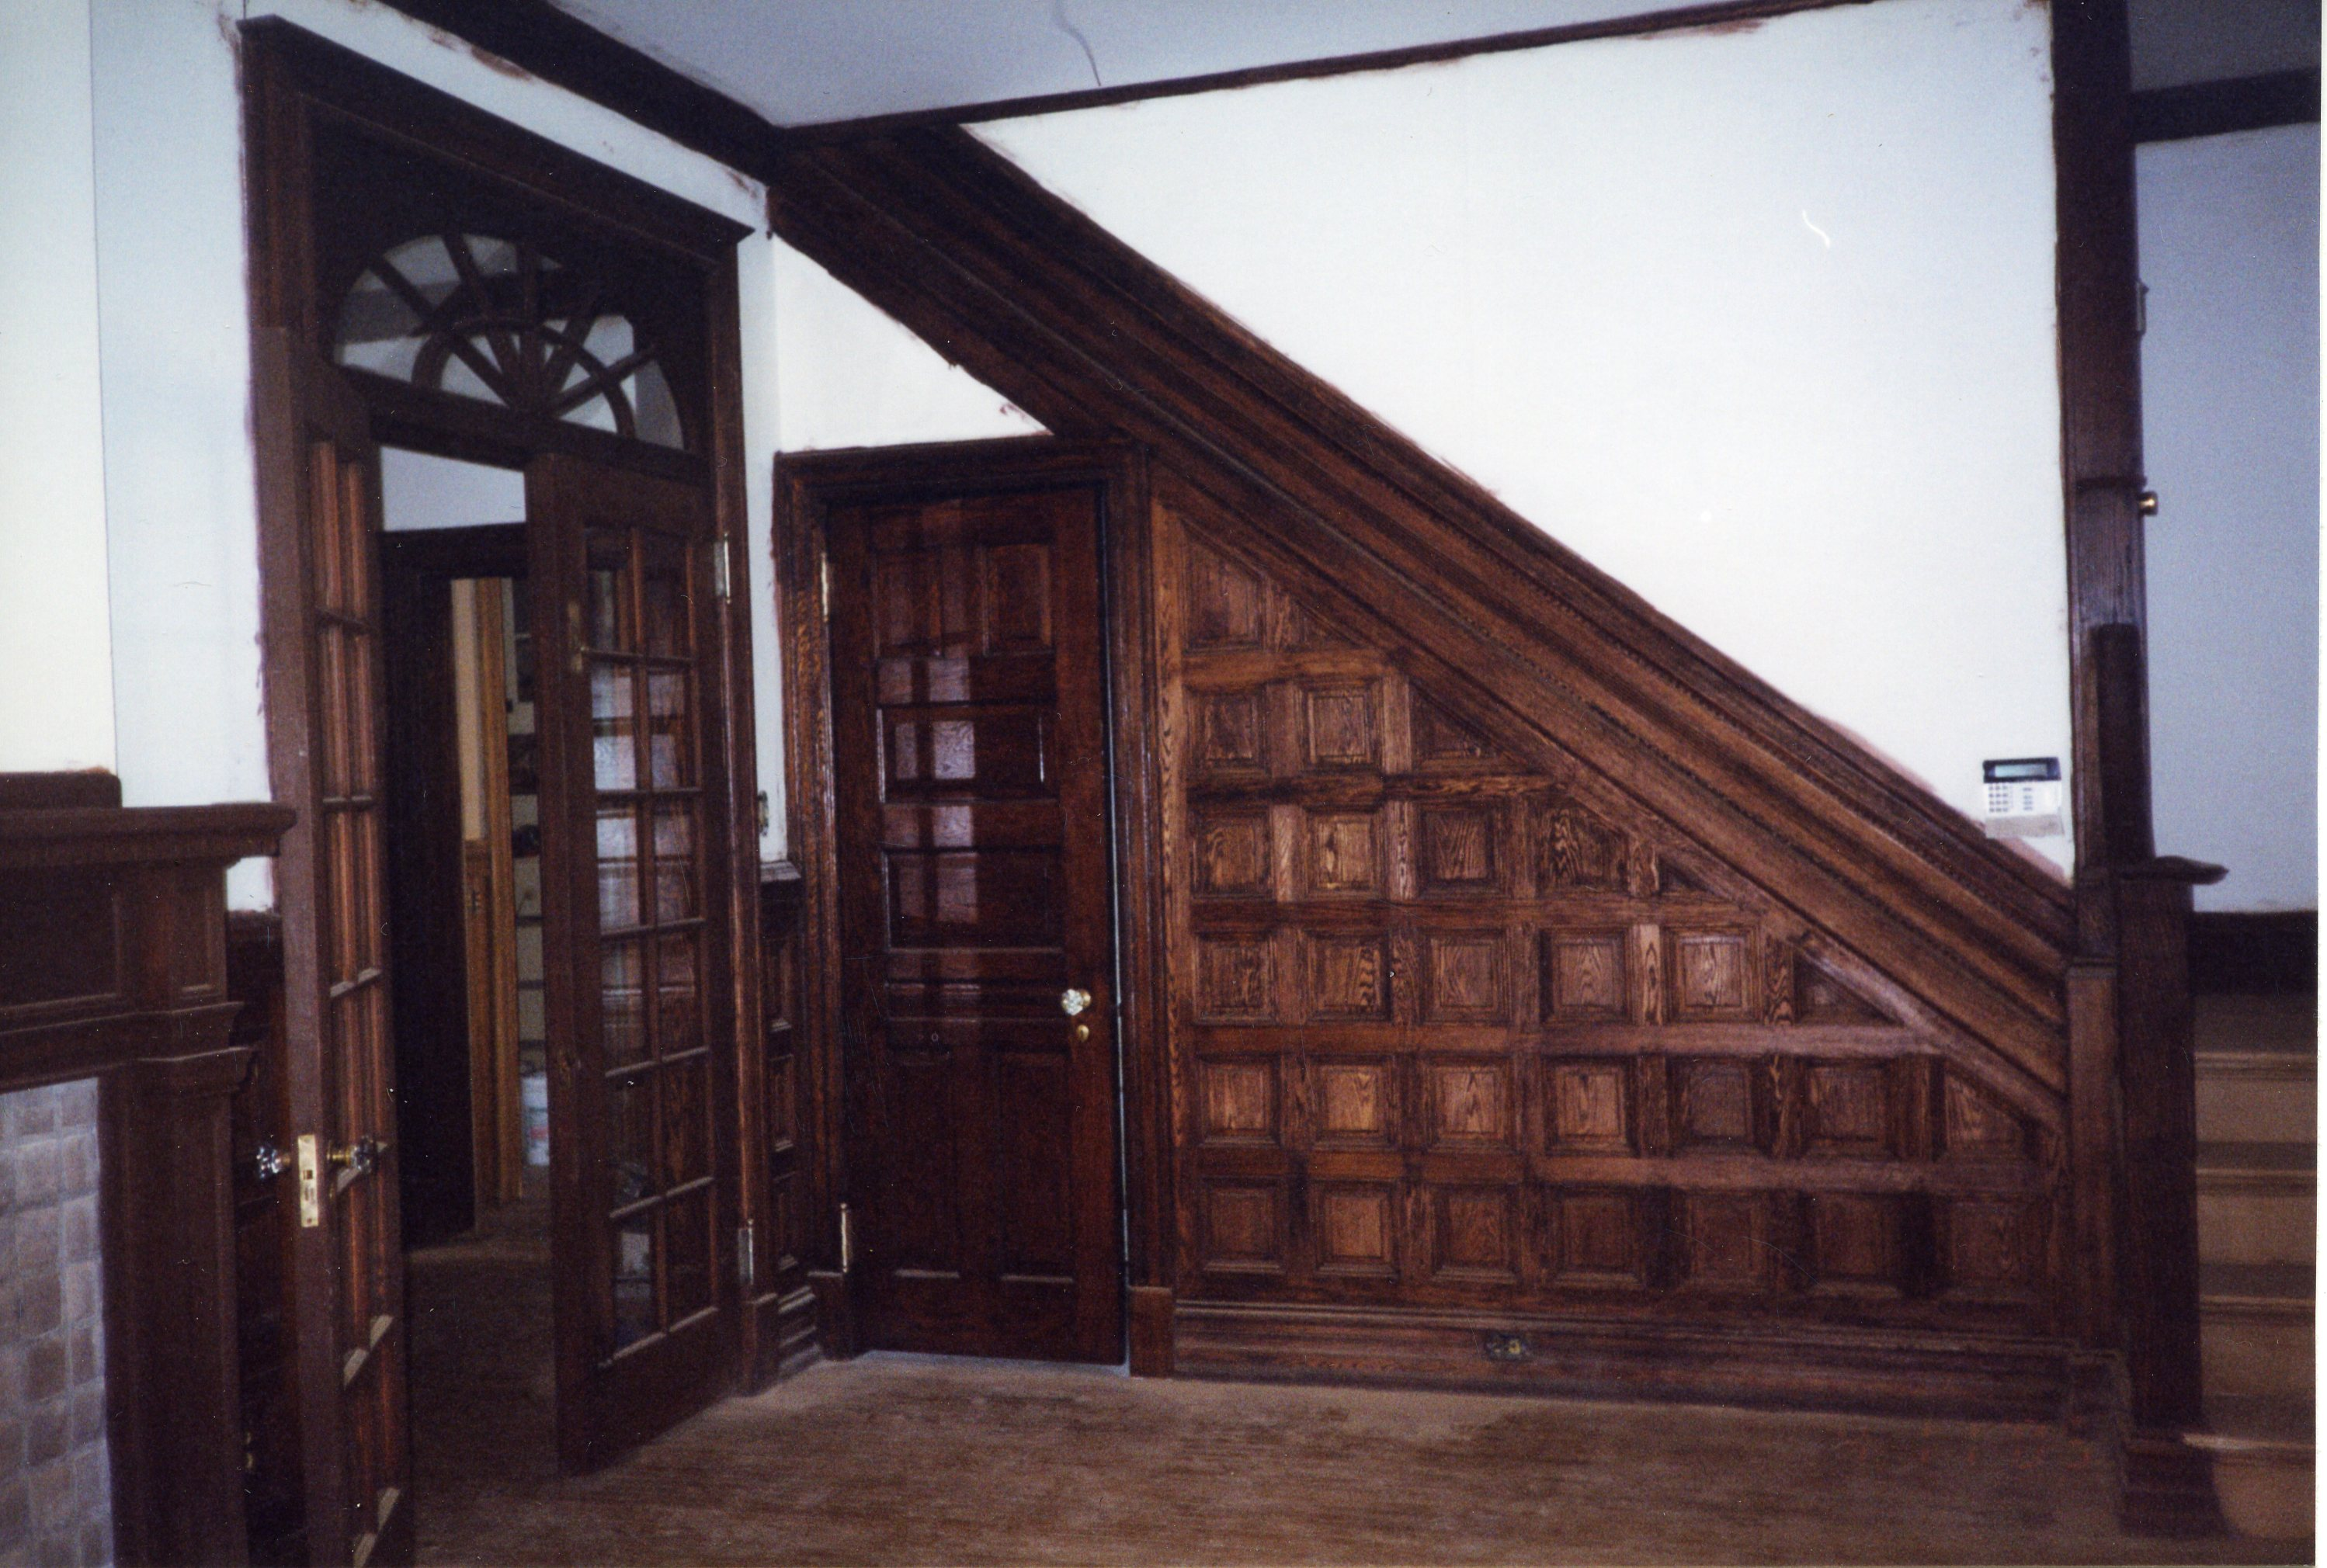 Foyer Staircase after restoration efforts (2005)